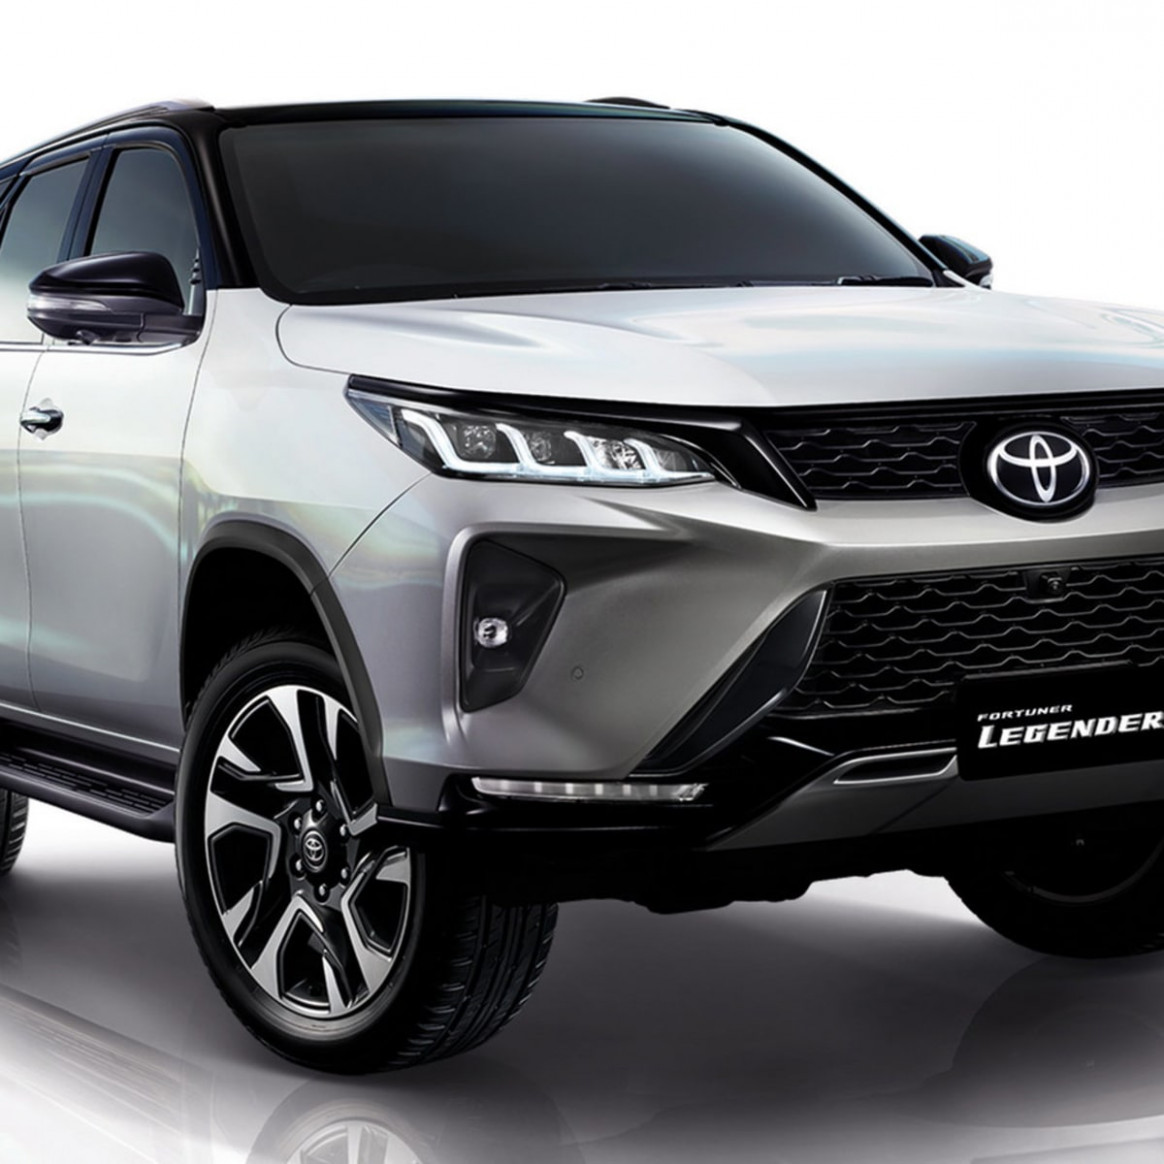 Spesification Toyota Fortuner 2022